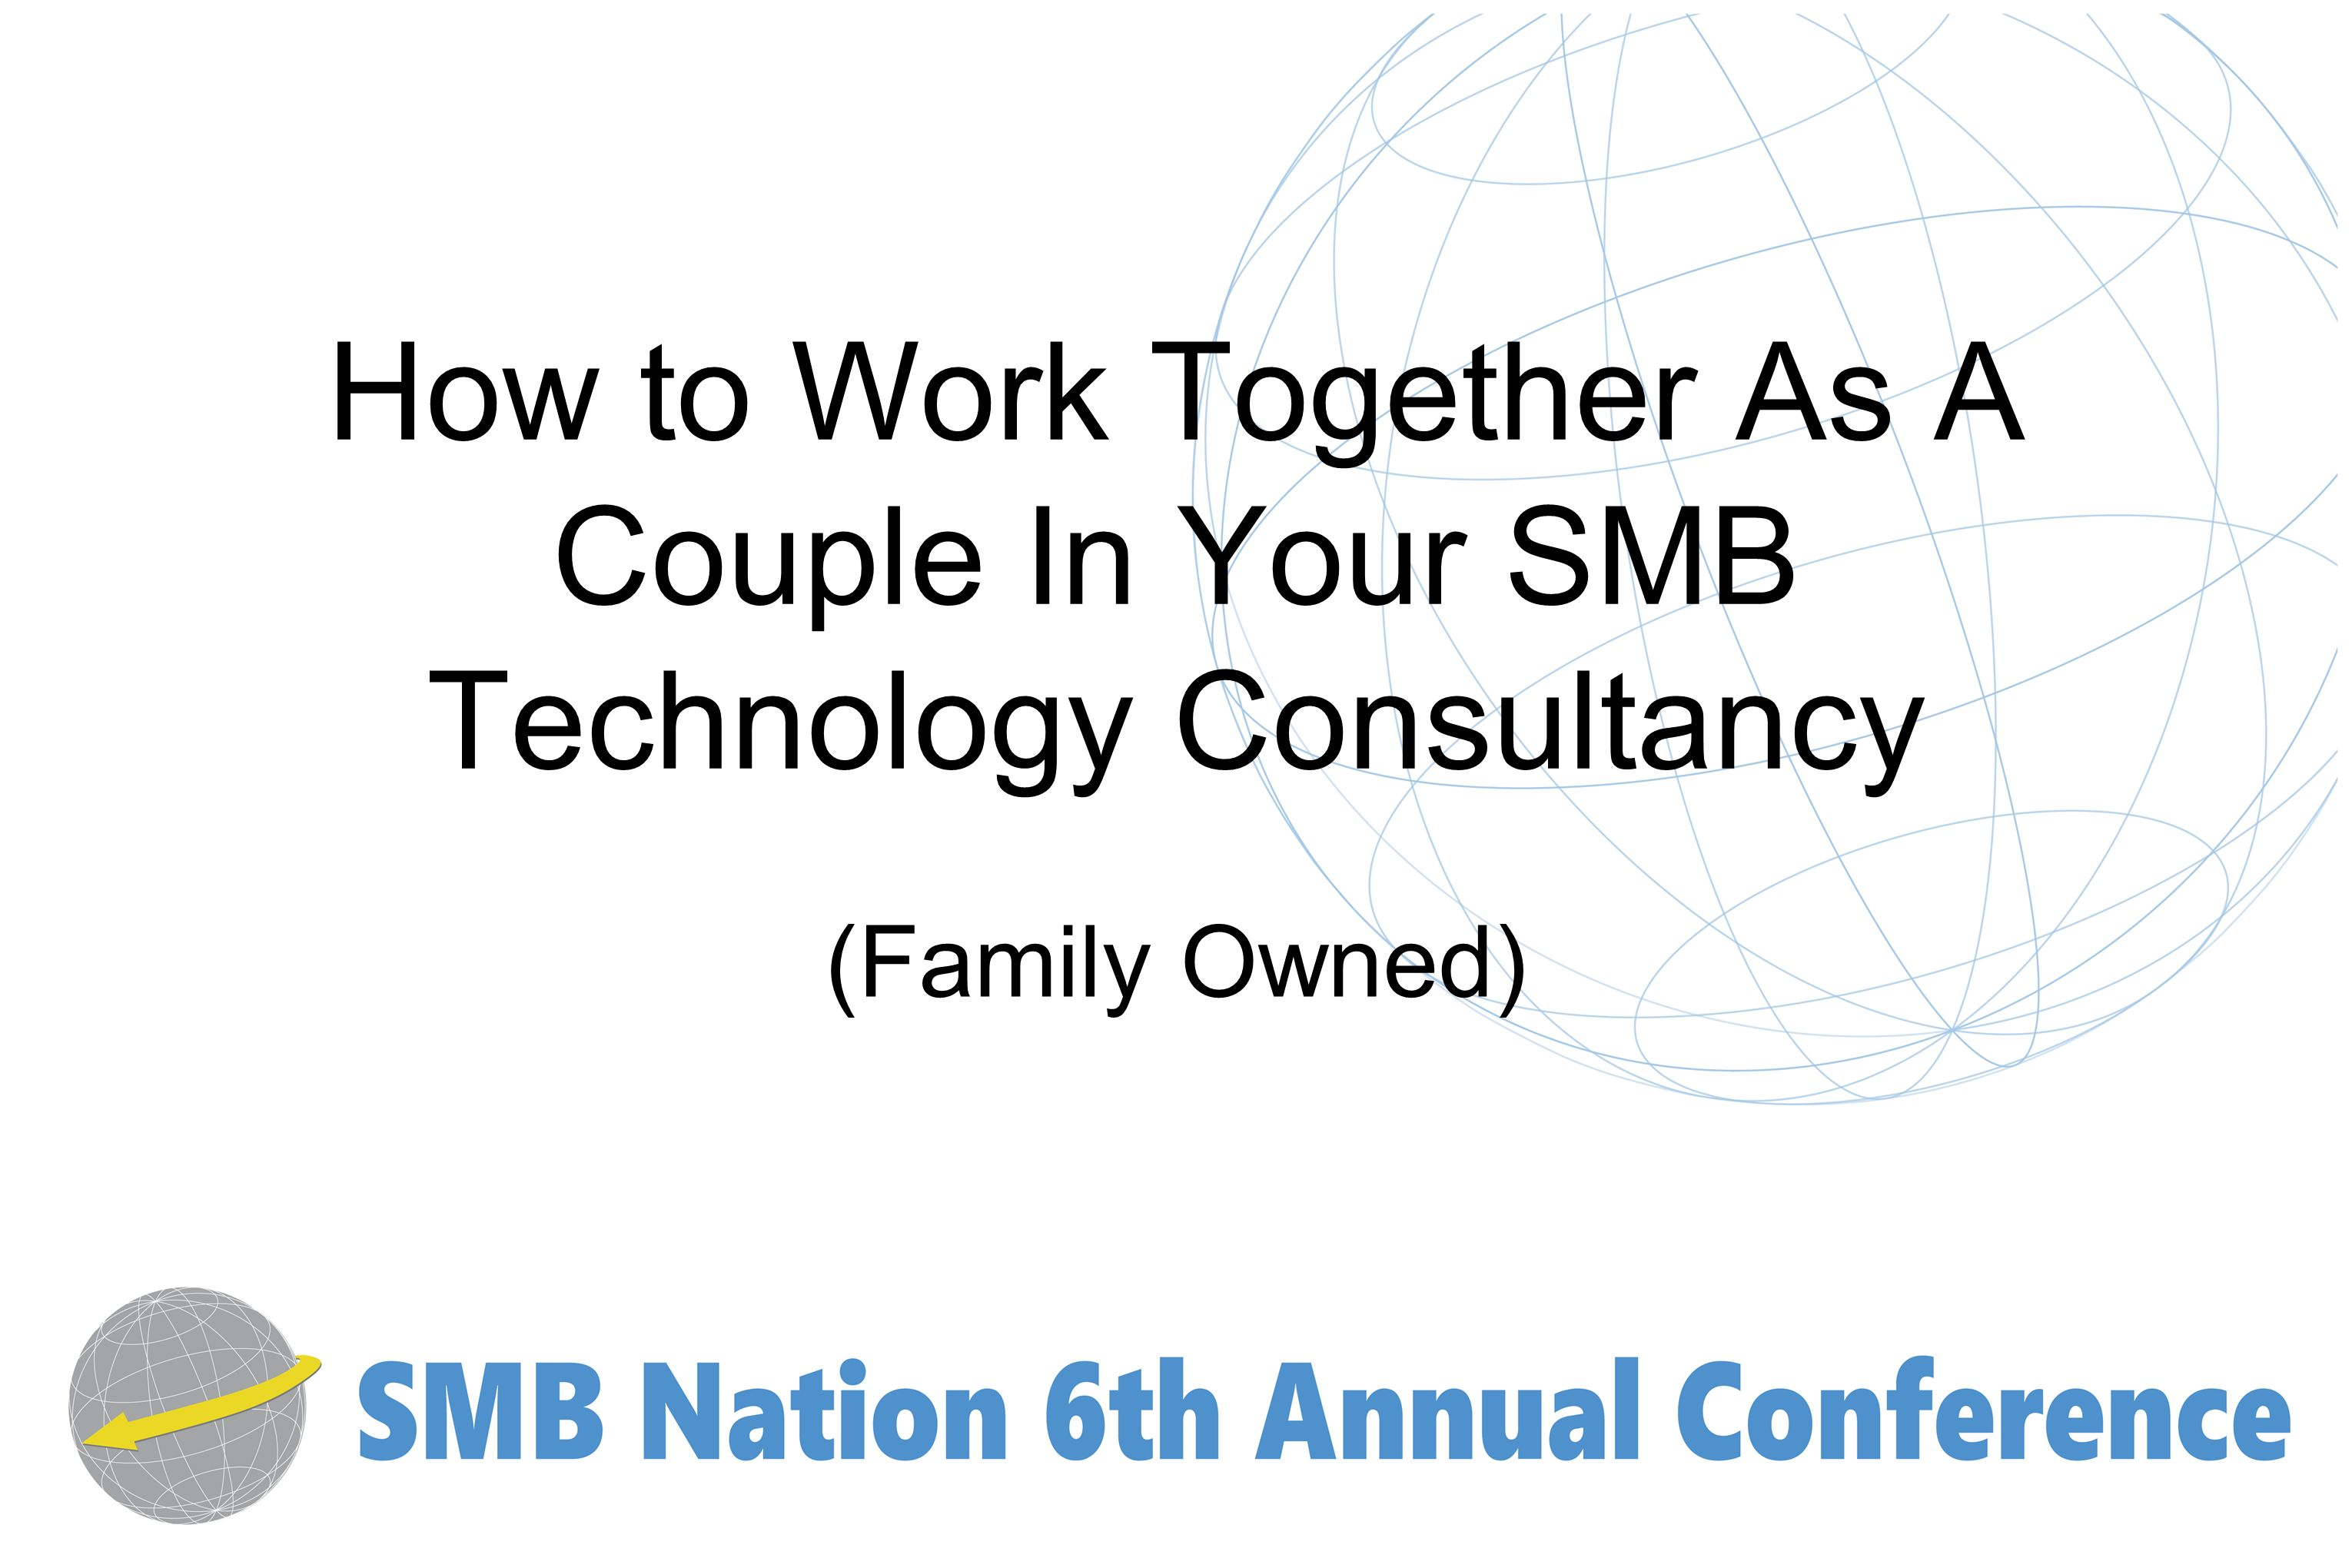 How to Work Together As A Couple In Your SMB Technology Consultancy (Family Owned)